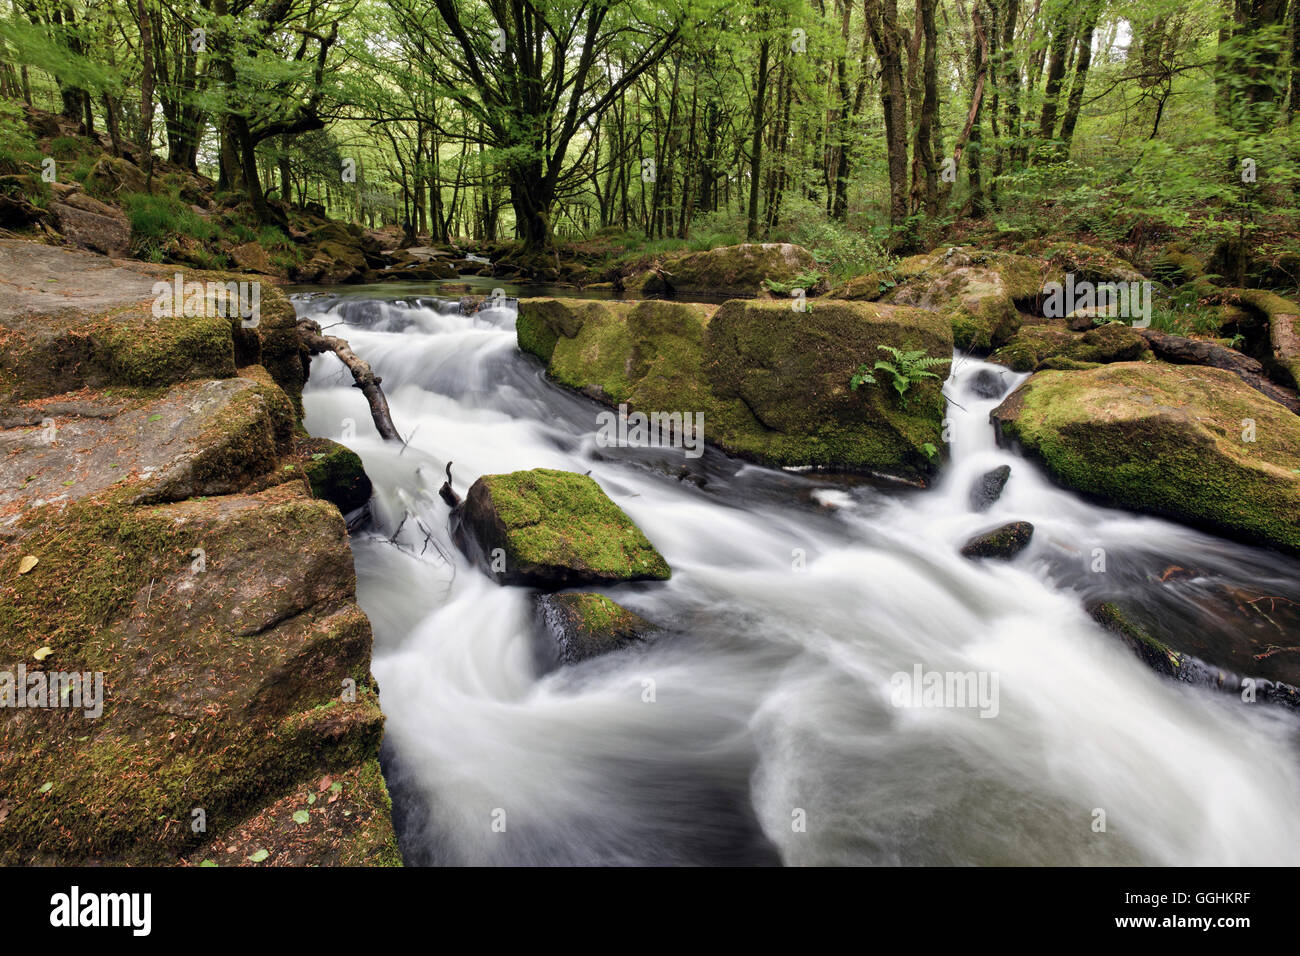 River Fowey at Golitha Falls National Nature Reserve, sessile oak woodland, Bodmin Moor, Cornwall, England, Great - Stock Image